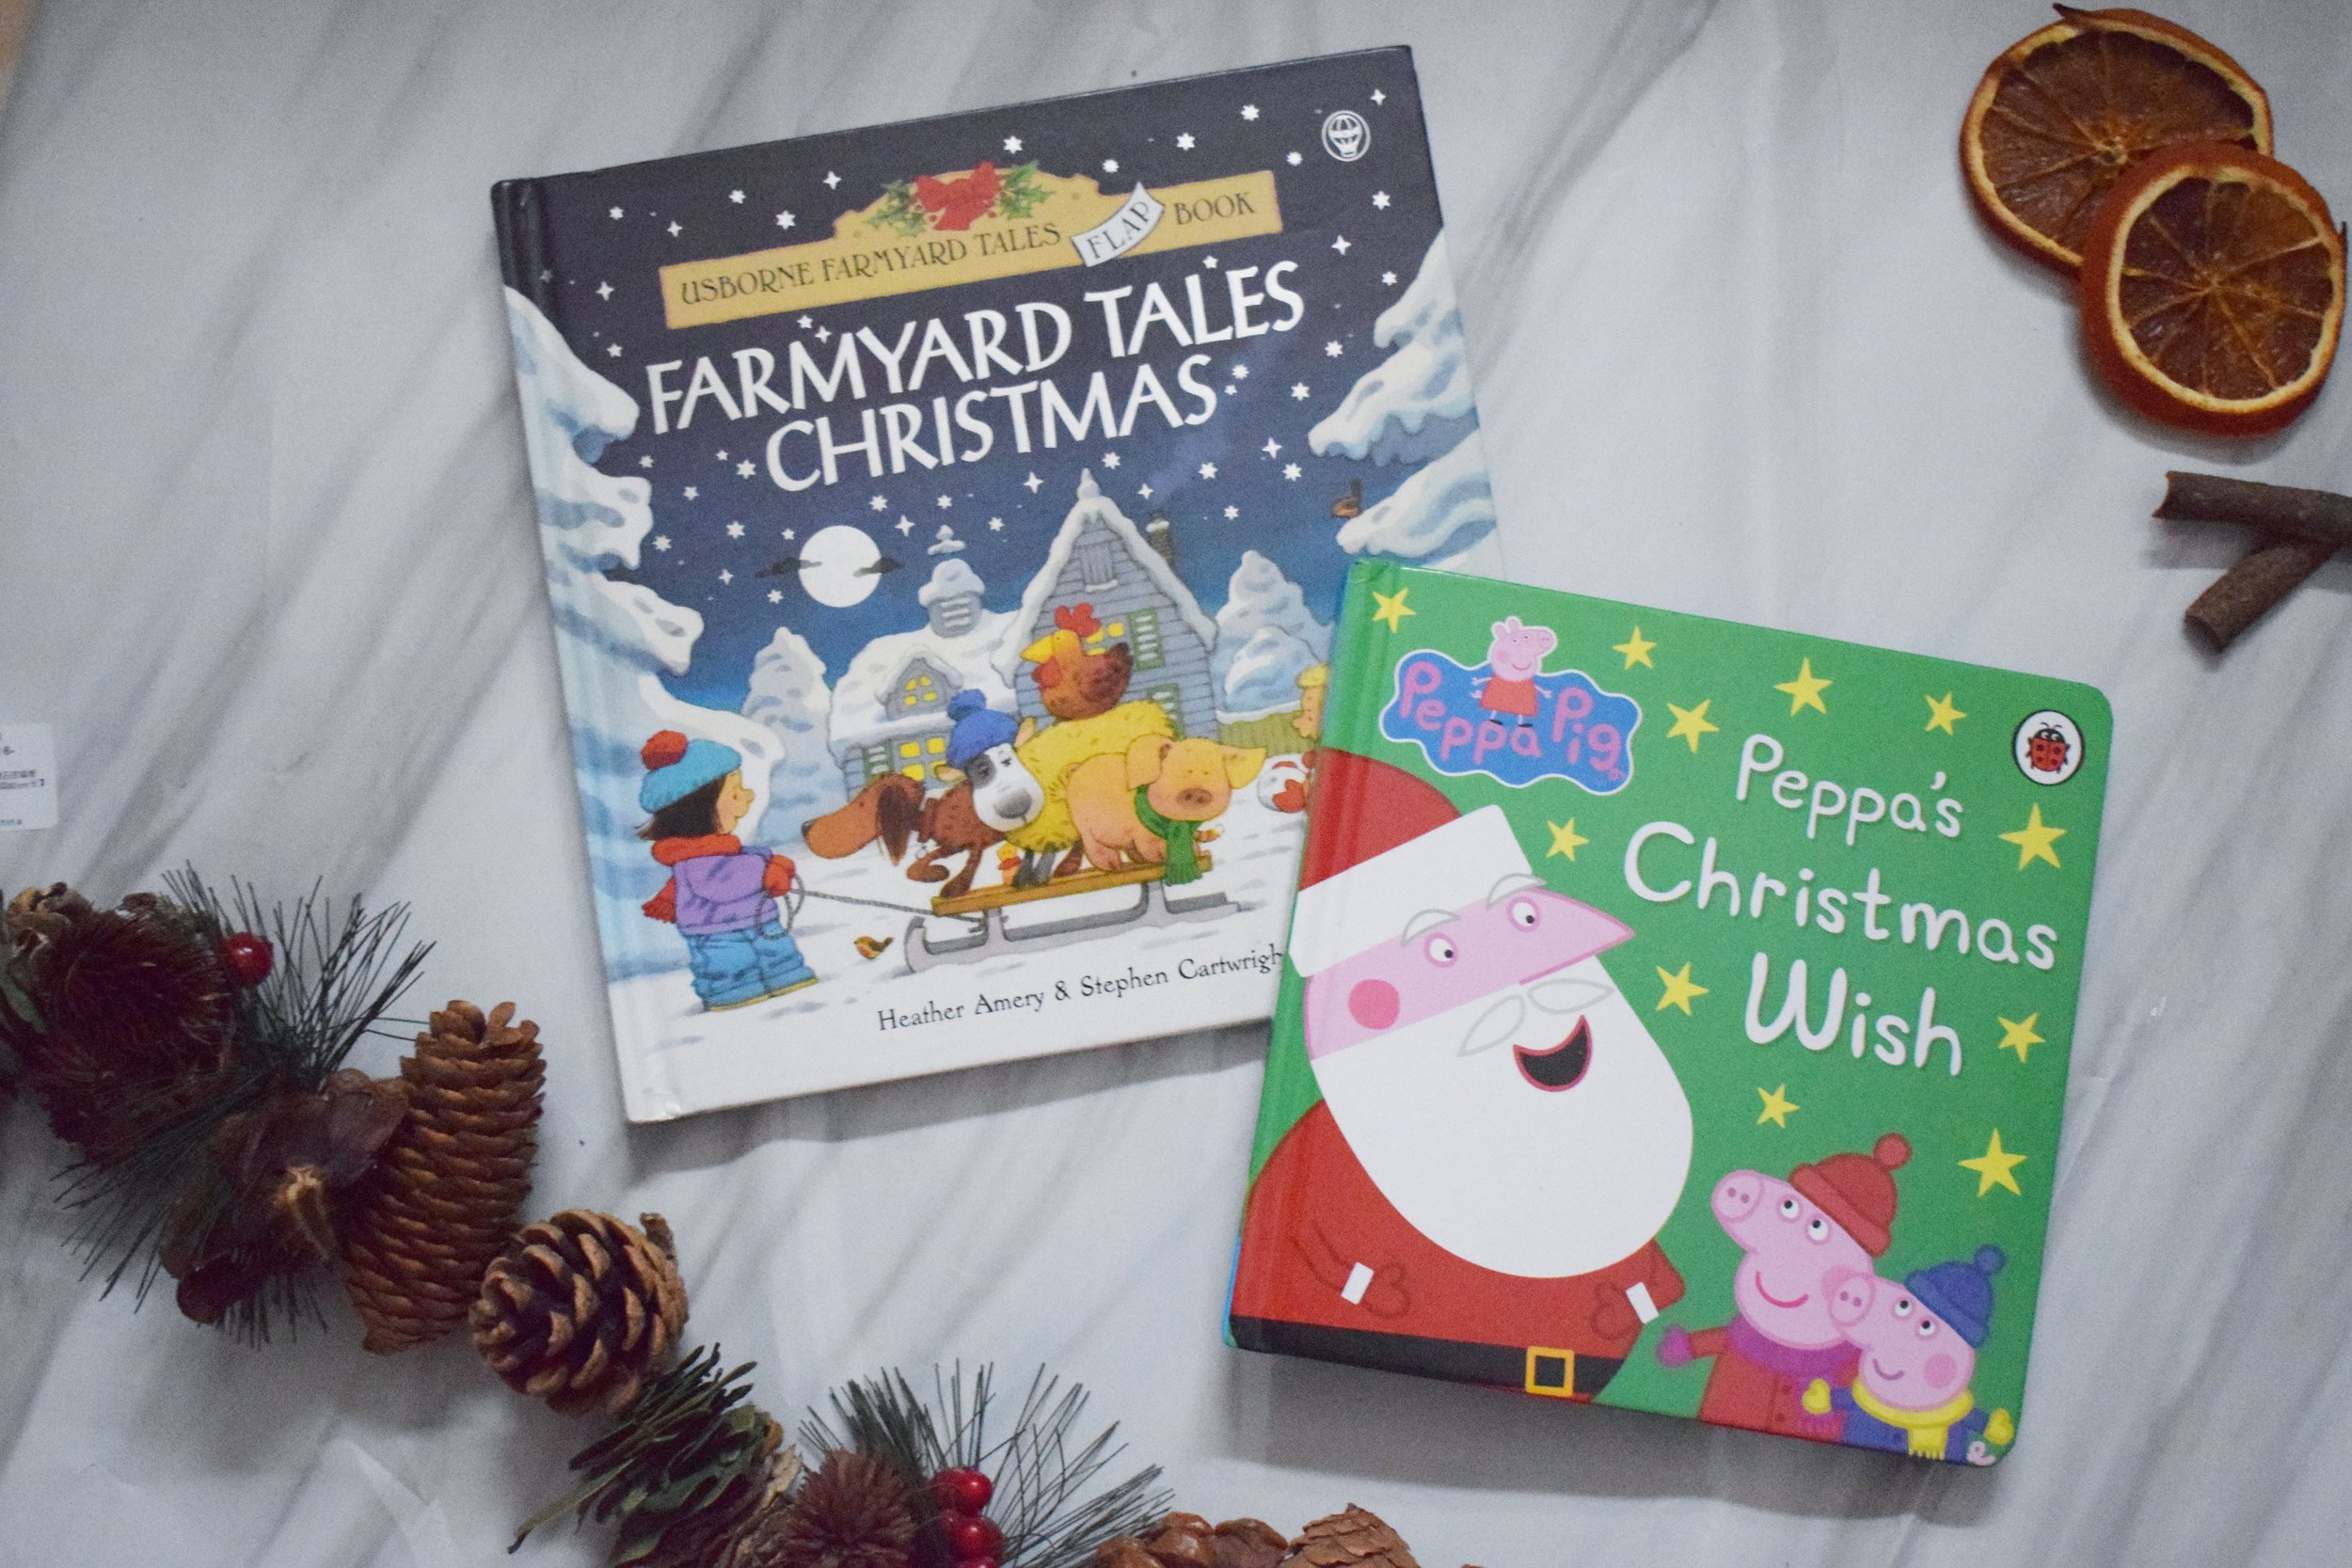 Christmas books from Usborne and Peppa Pig